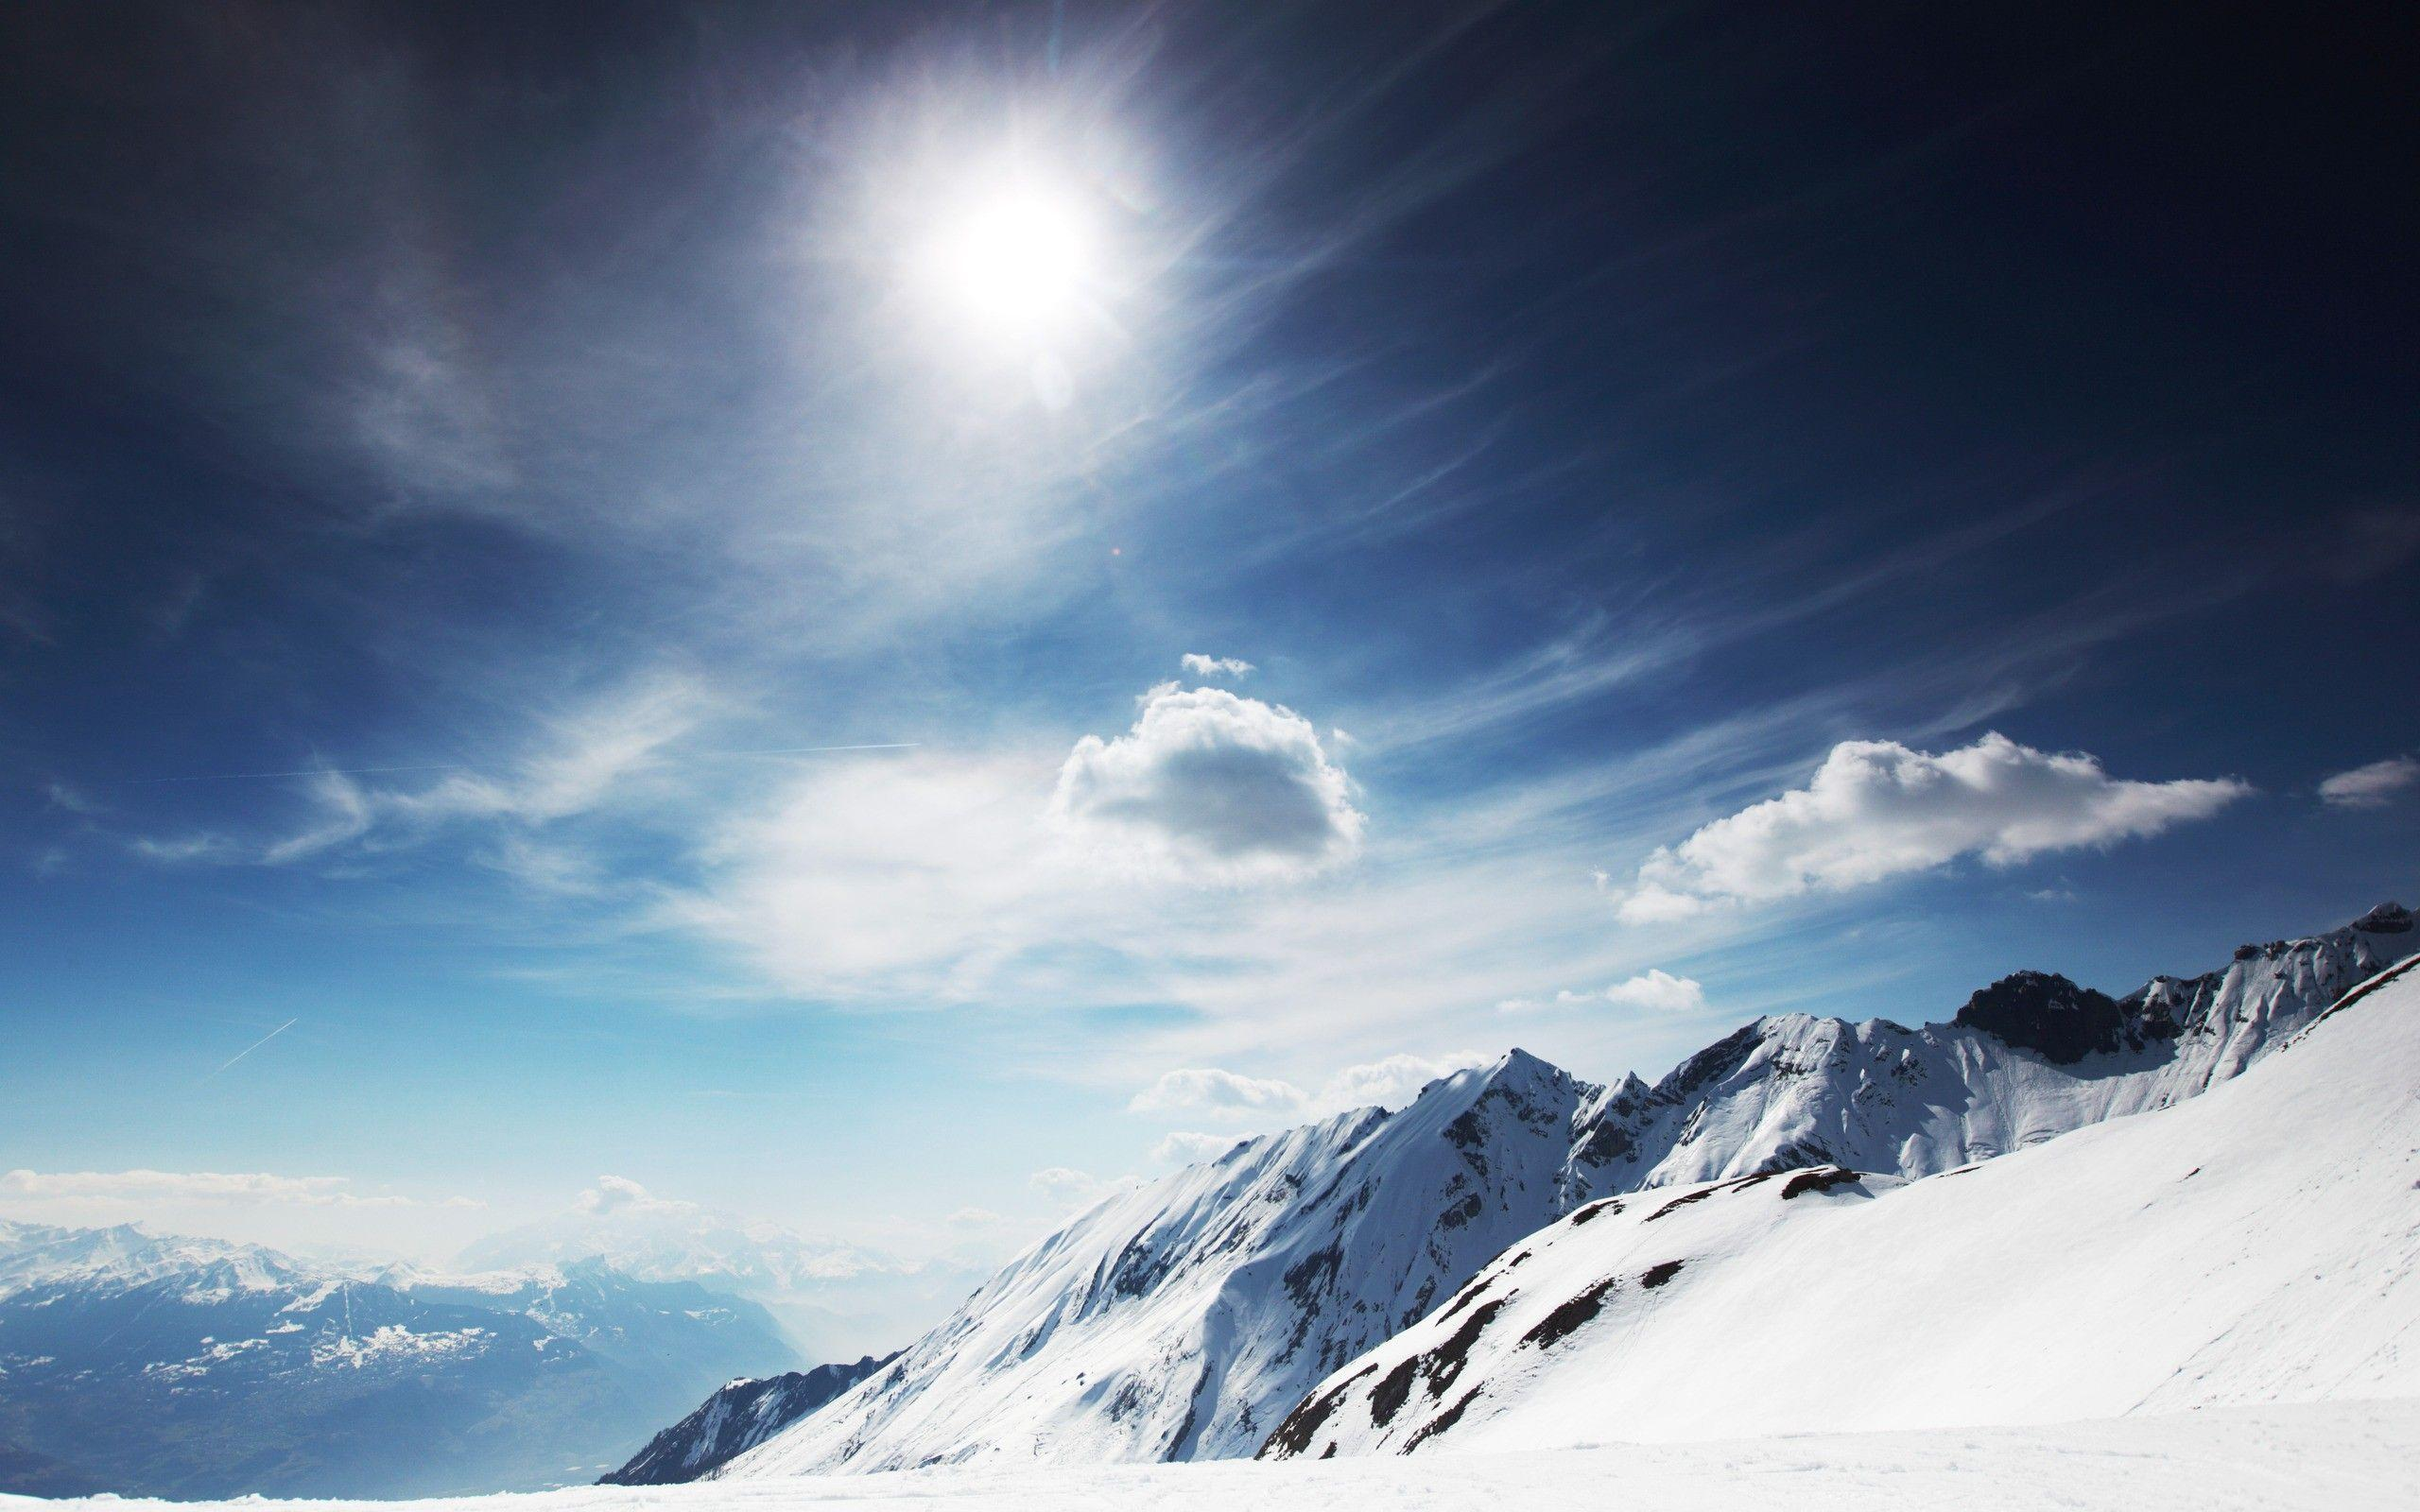 Snowy Mountains Wallpapers Wallpaper